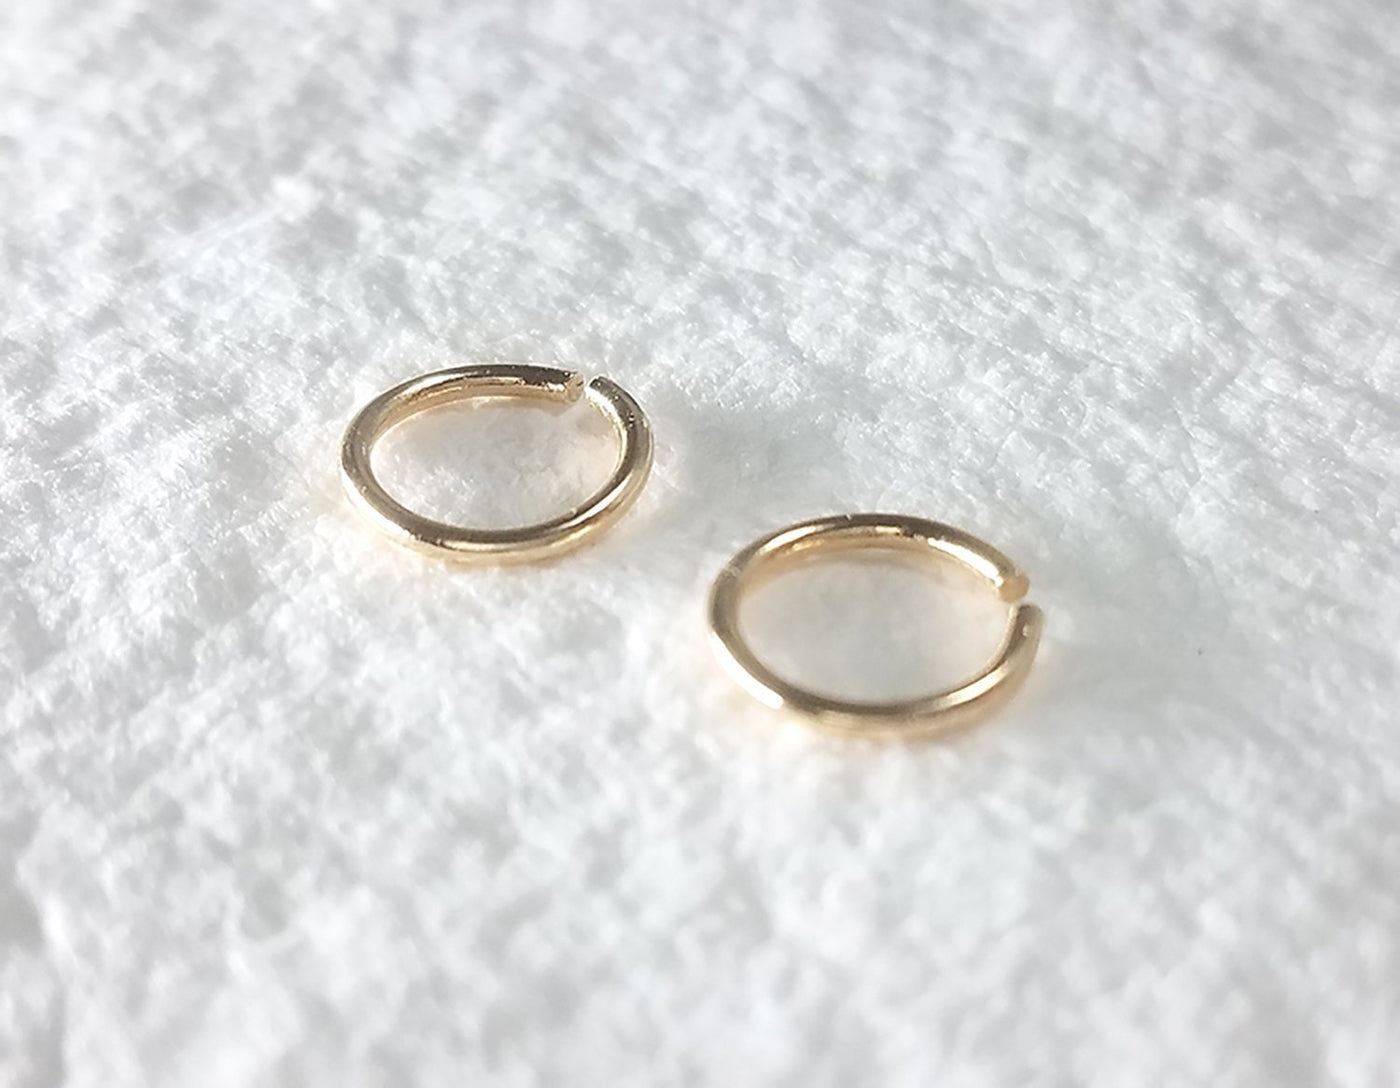 14k yellow gold hoops, round earrings, small hoops, everyday earrings